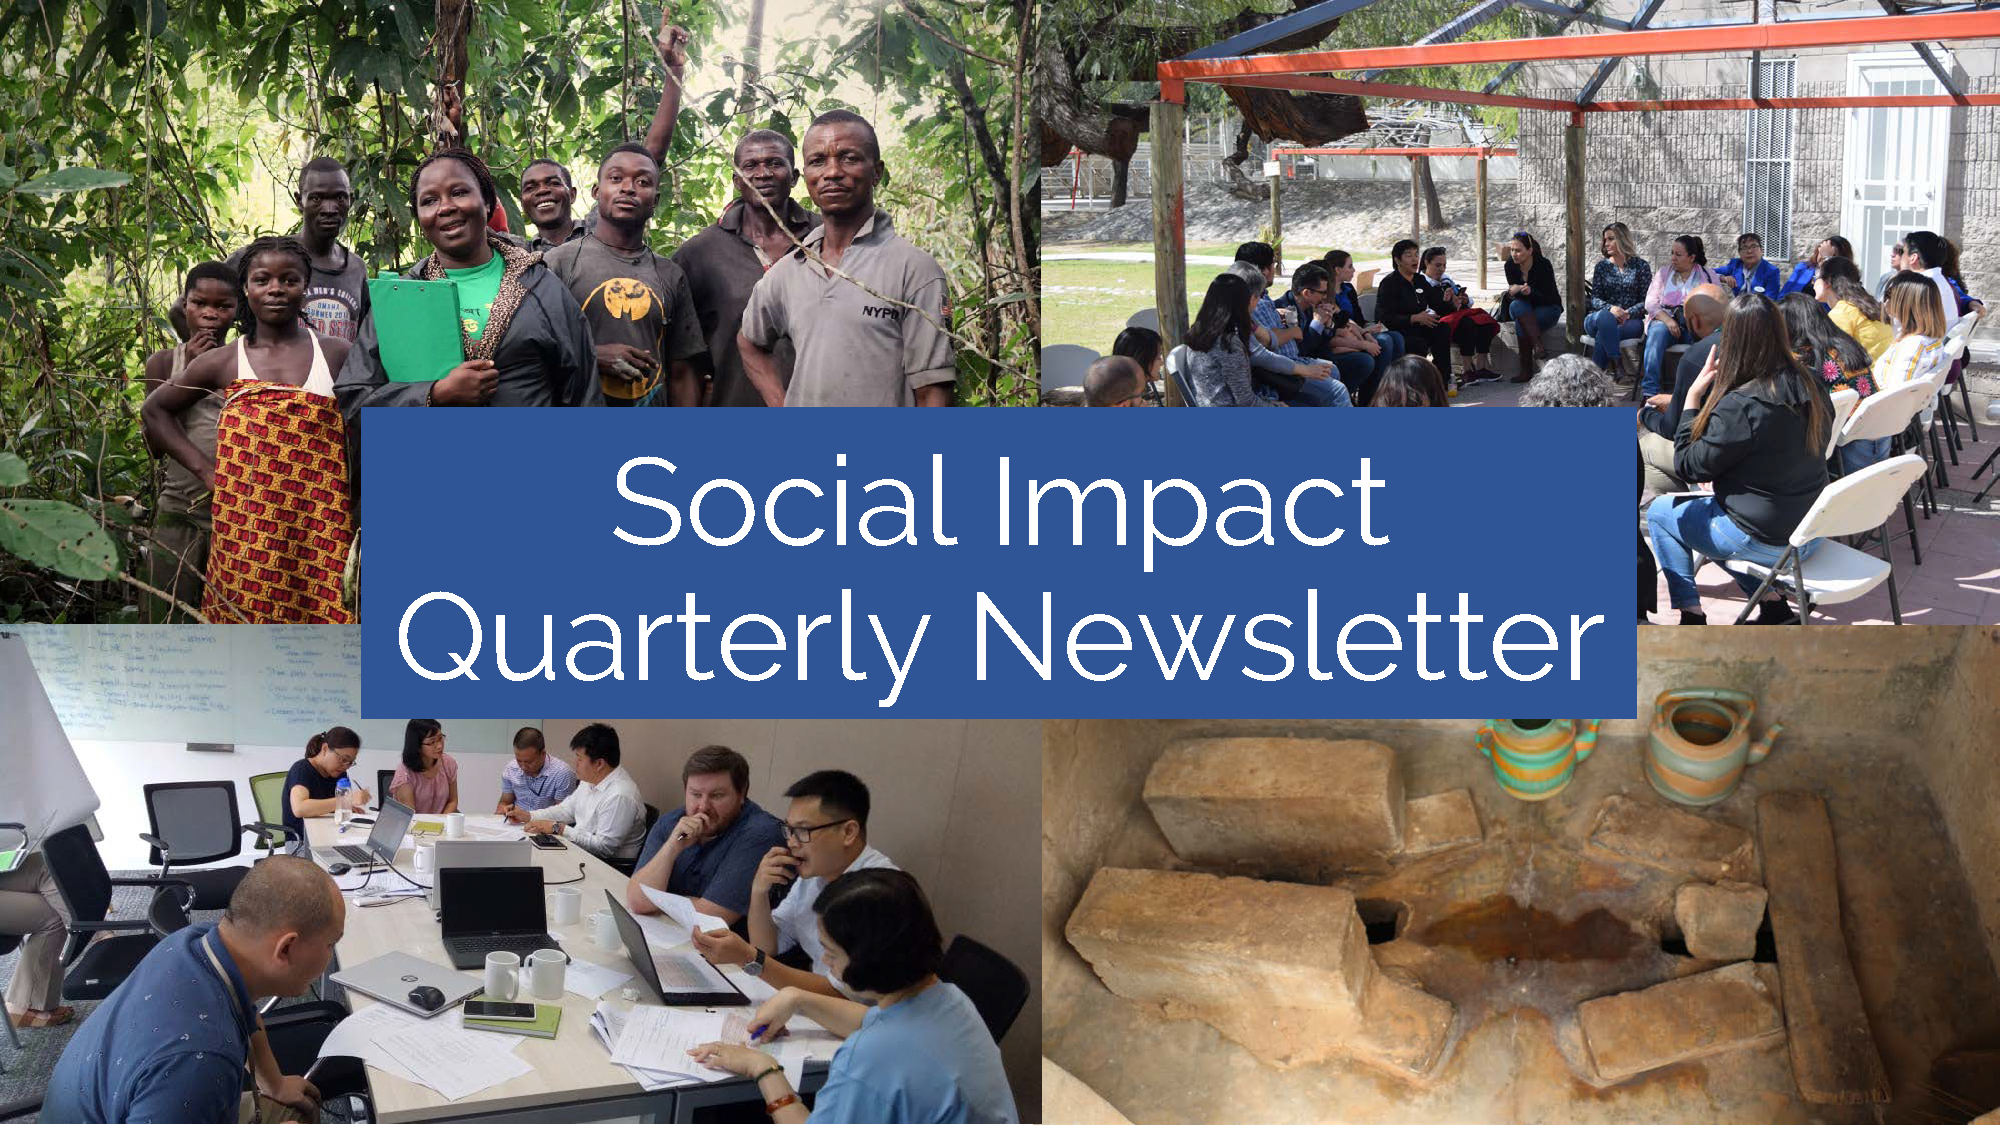 Social Impact's Quarterly Newsletter